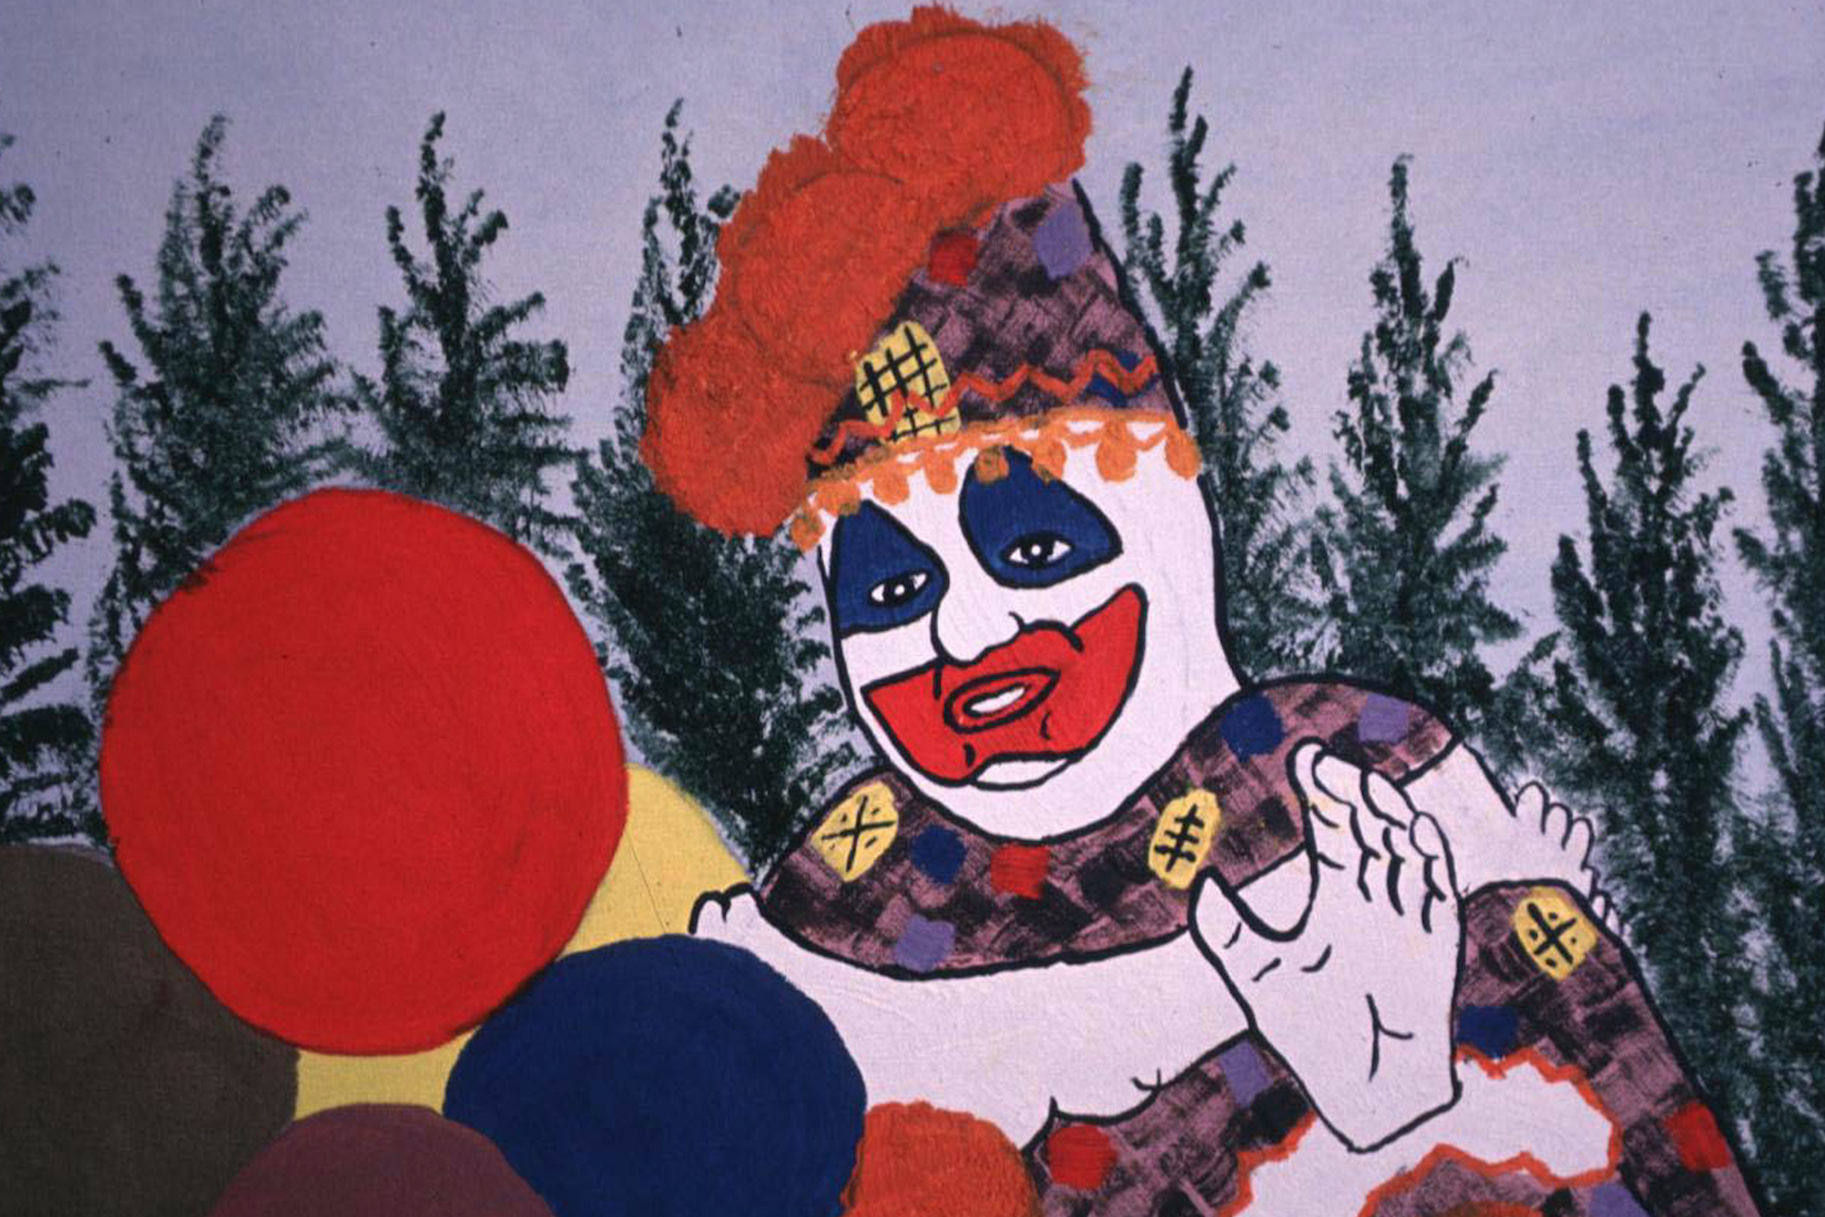 'Killer Clown' John Wayne Gacy's Former Property, Where Dozens Of His Victims Were Found, Is Up For Sale